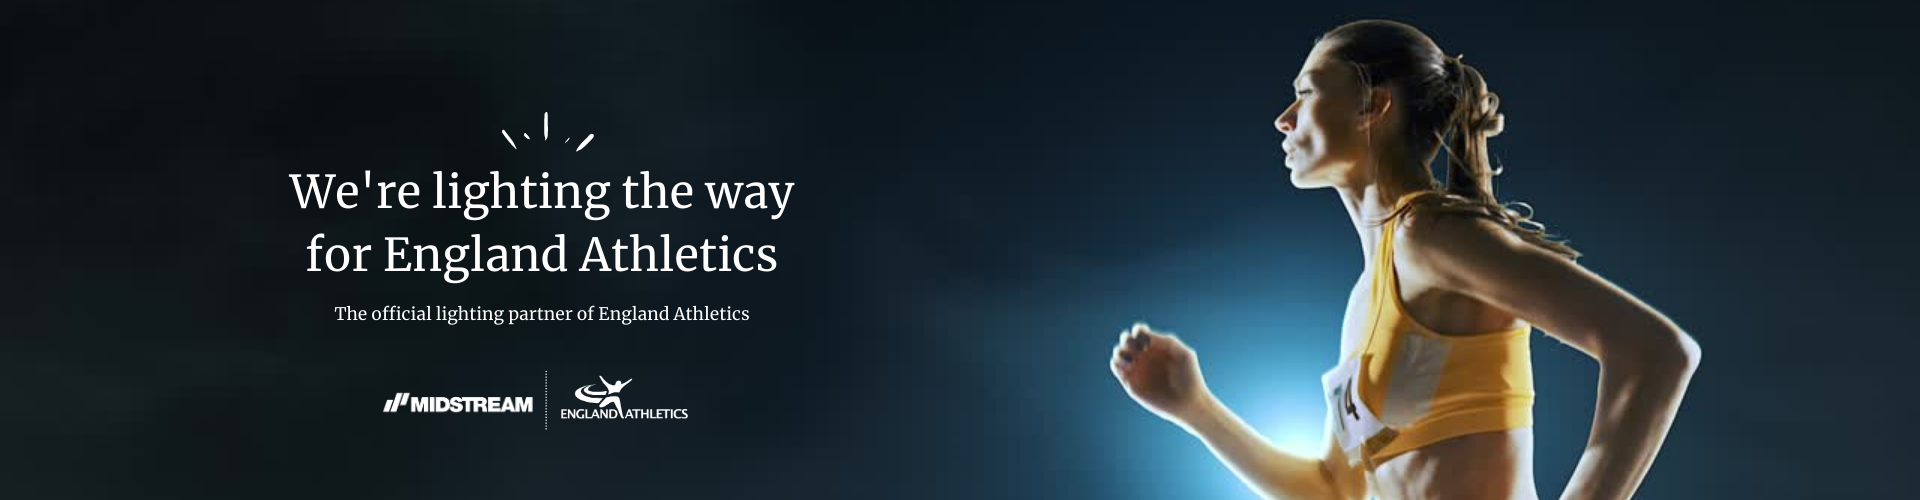 The Official Lighting Partner of England Athletics